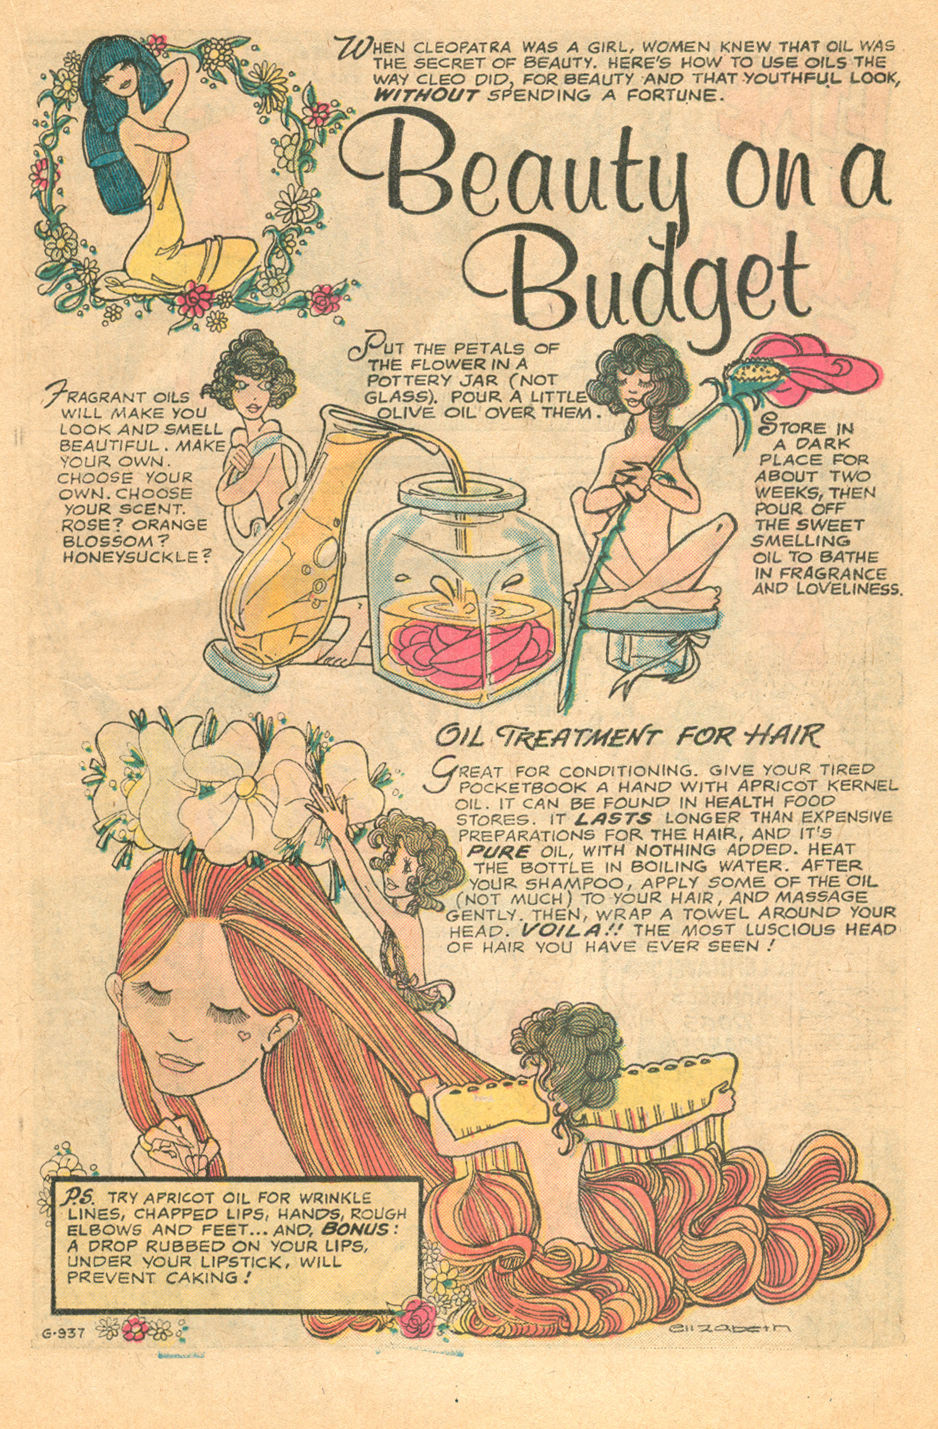 Young Love (1963) #119, Beauty on a Budget with art by Elizabeth Berube.